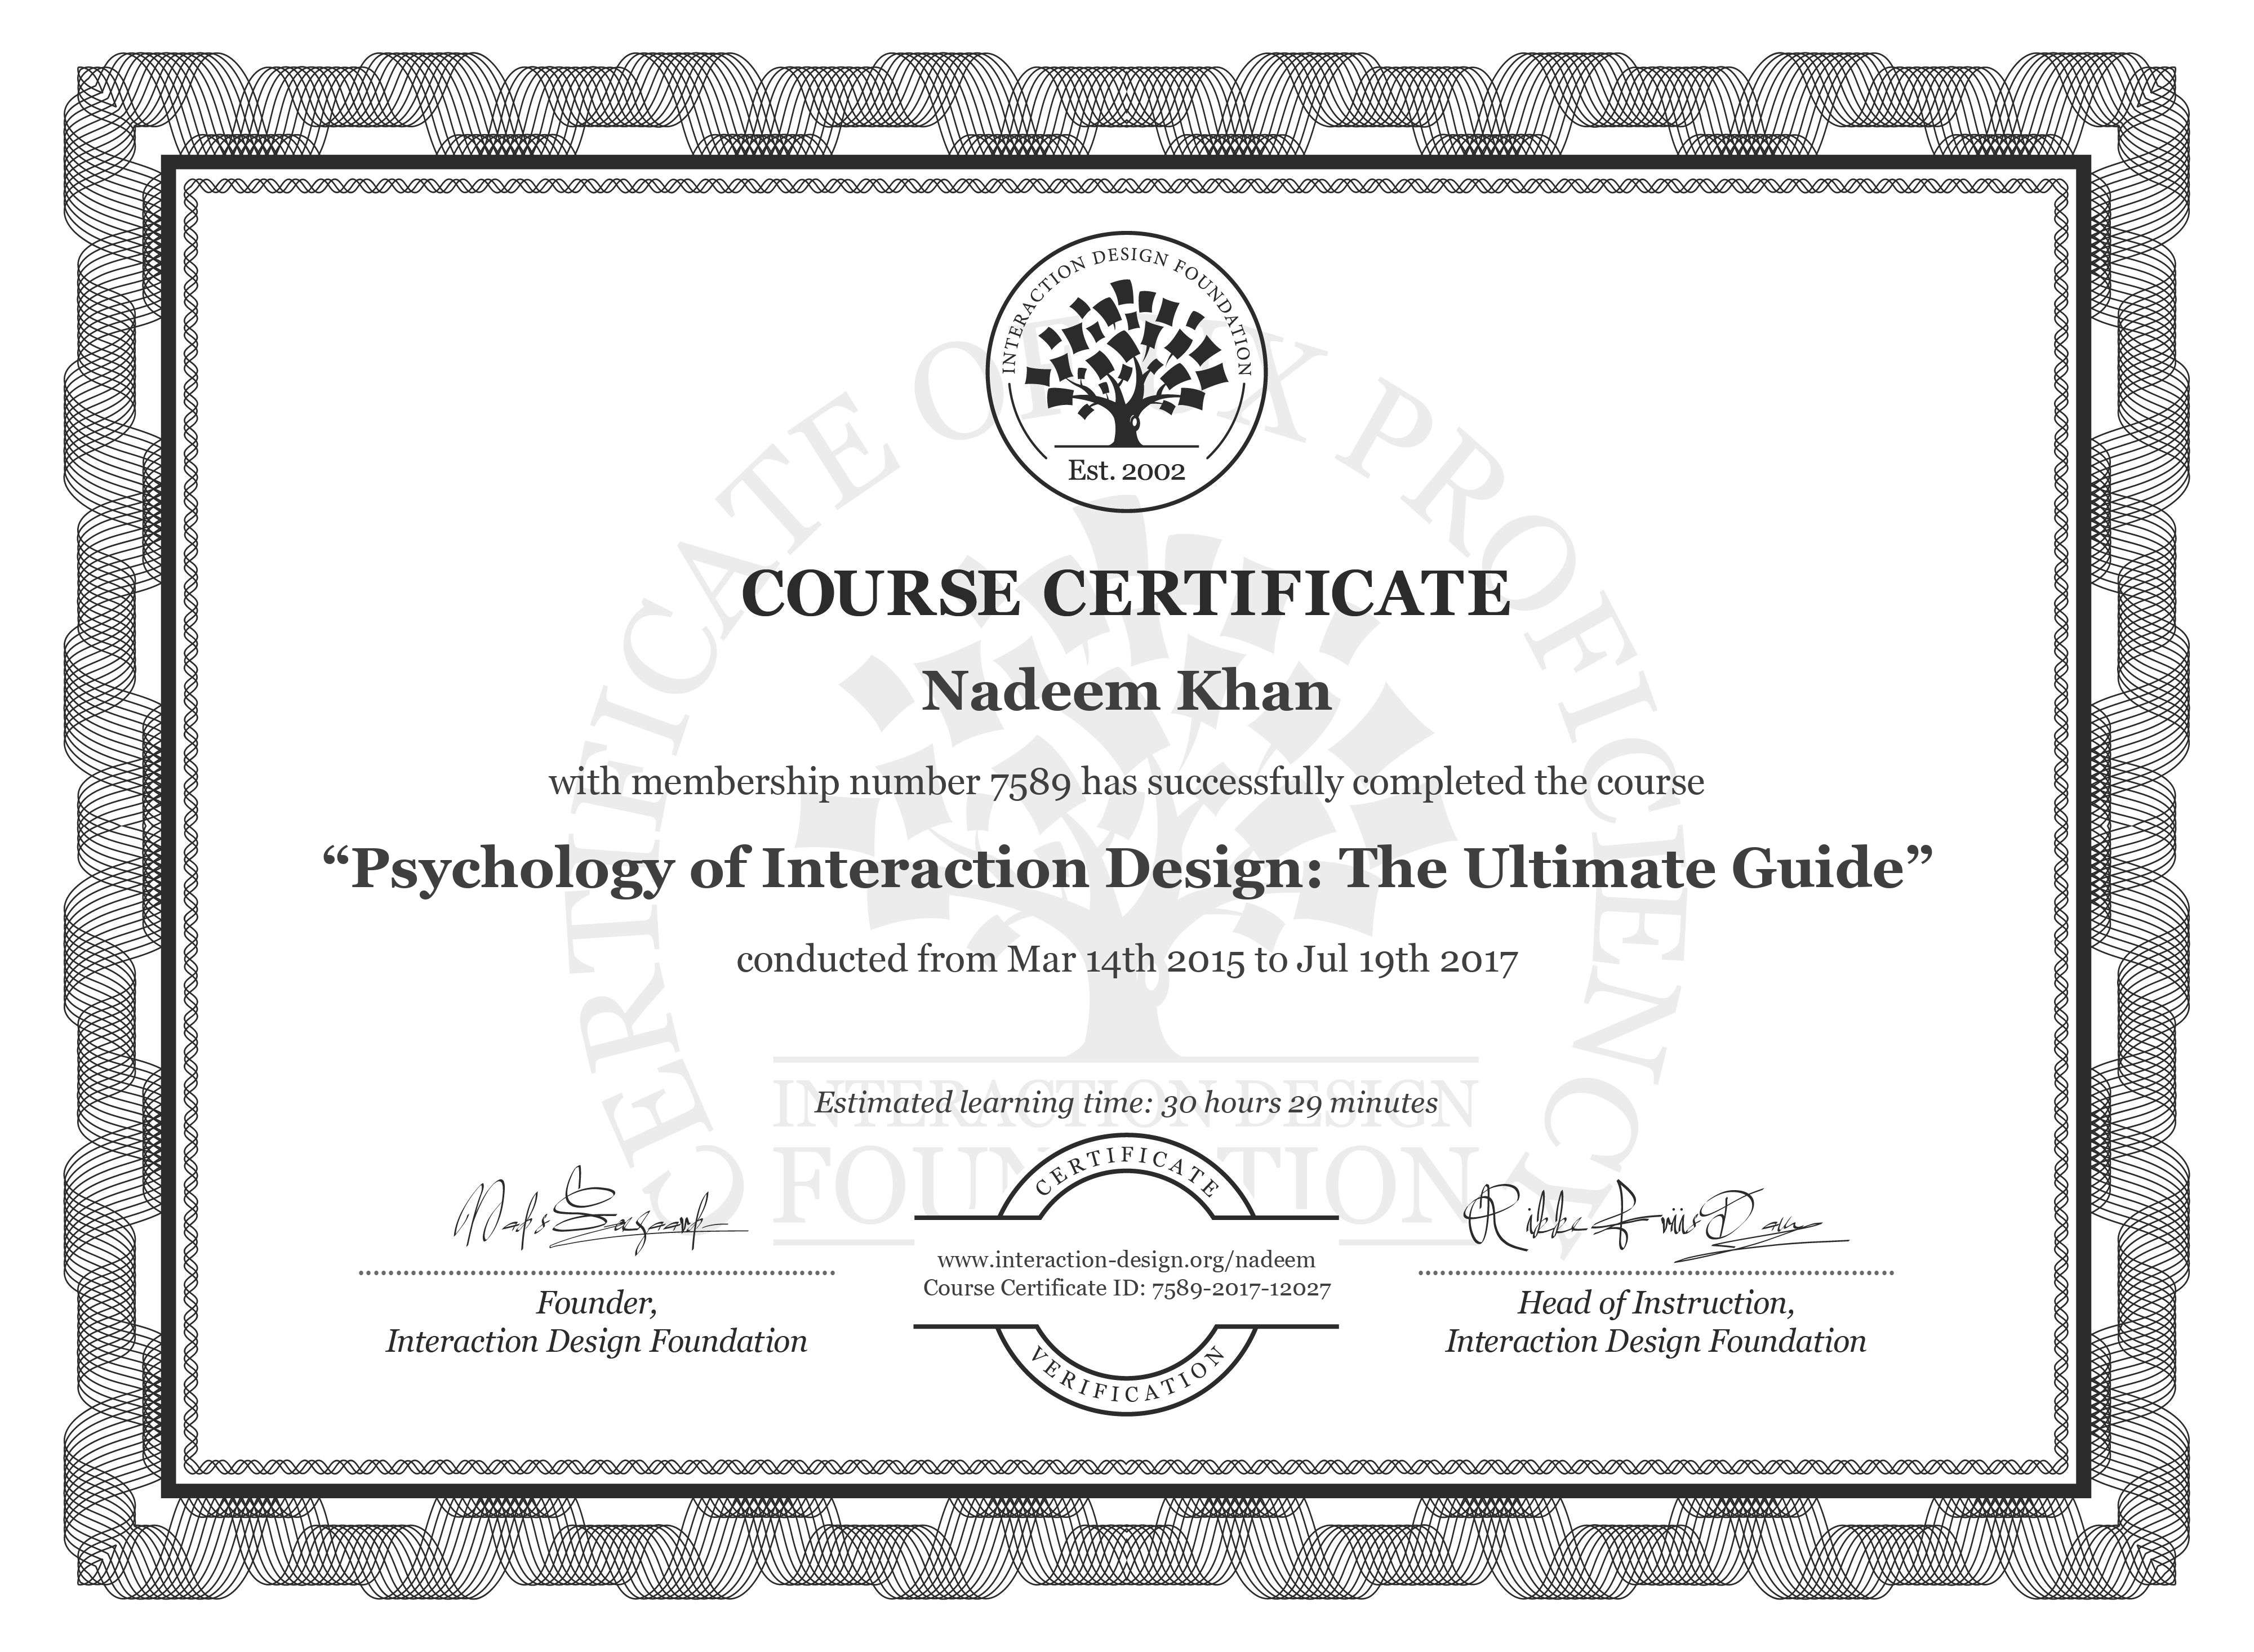 Nadeem Khan: Course Certificate - Psychology of Interaction Design: The Ultimate Guide